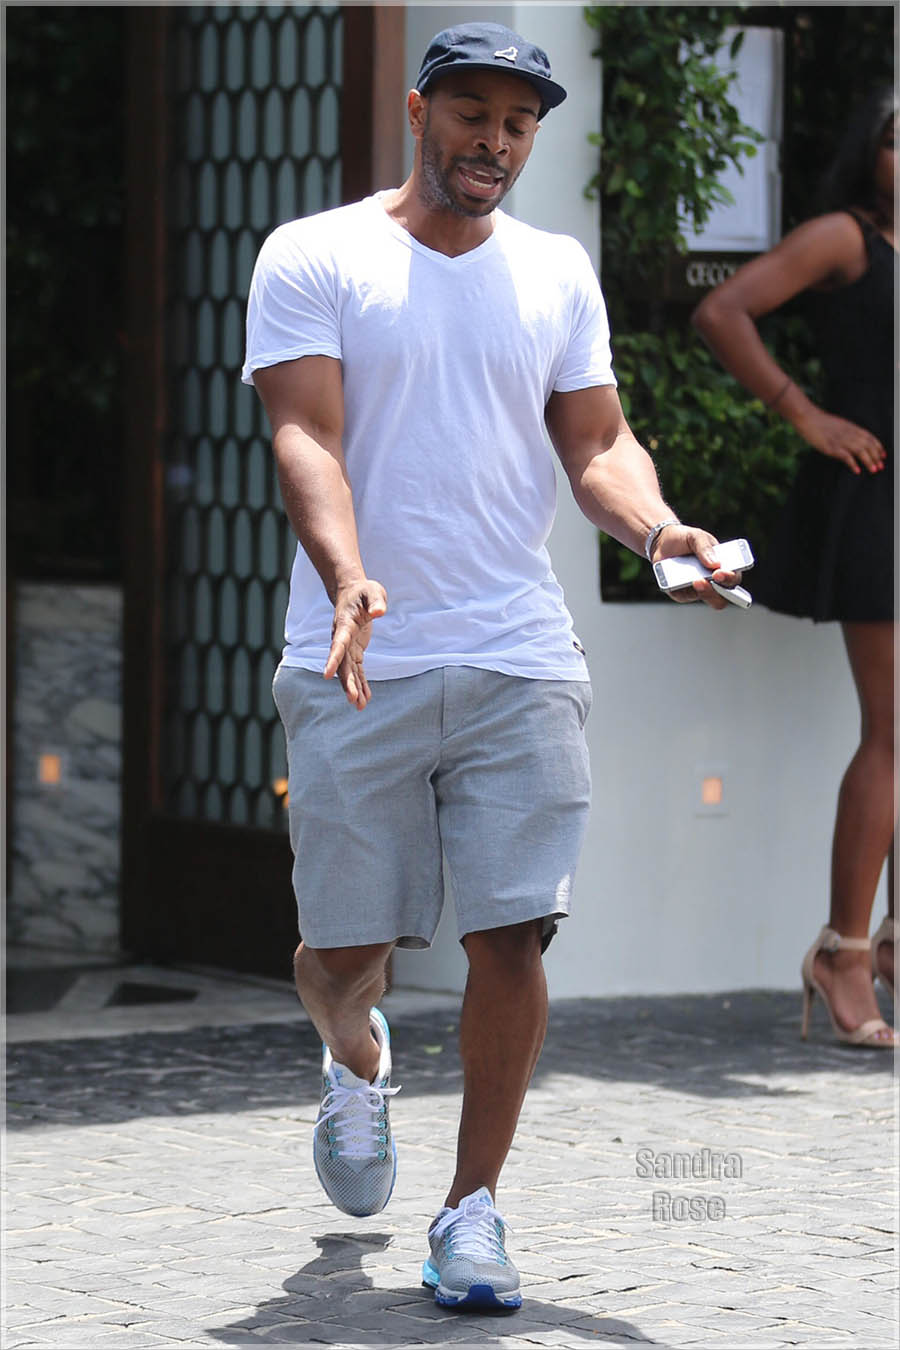 Tim Witherspoon spotted out while Kelly Rowland goes shopping